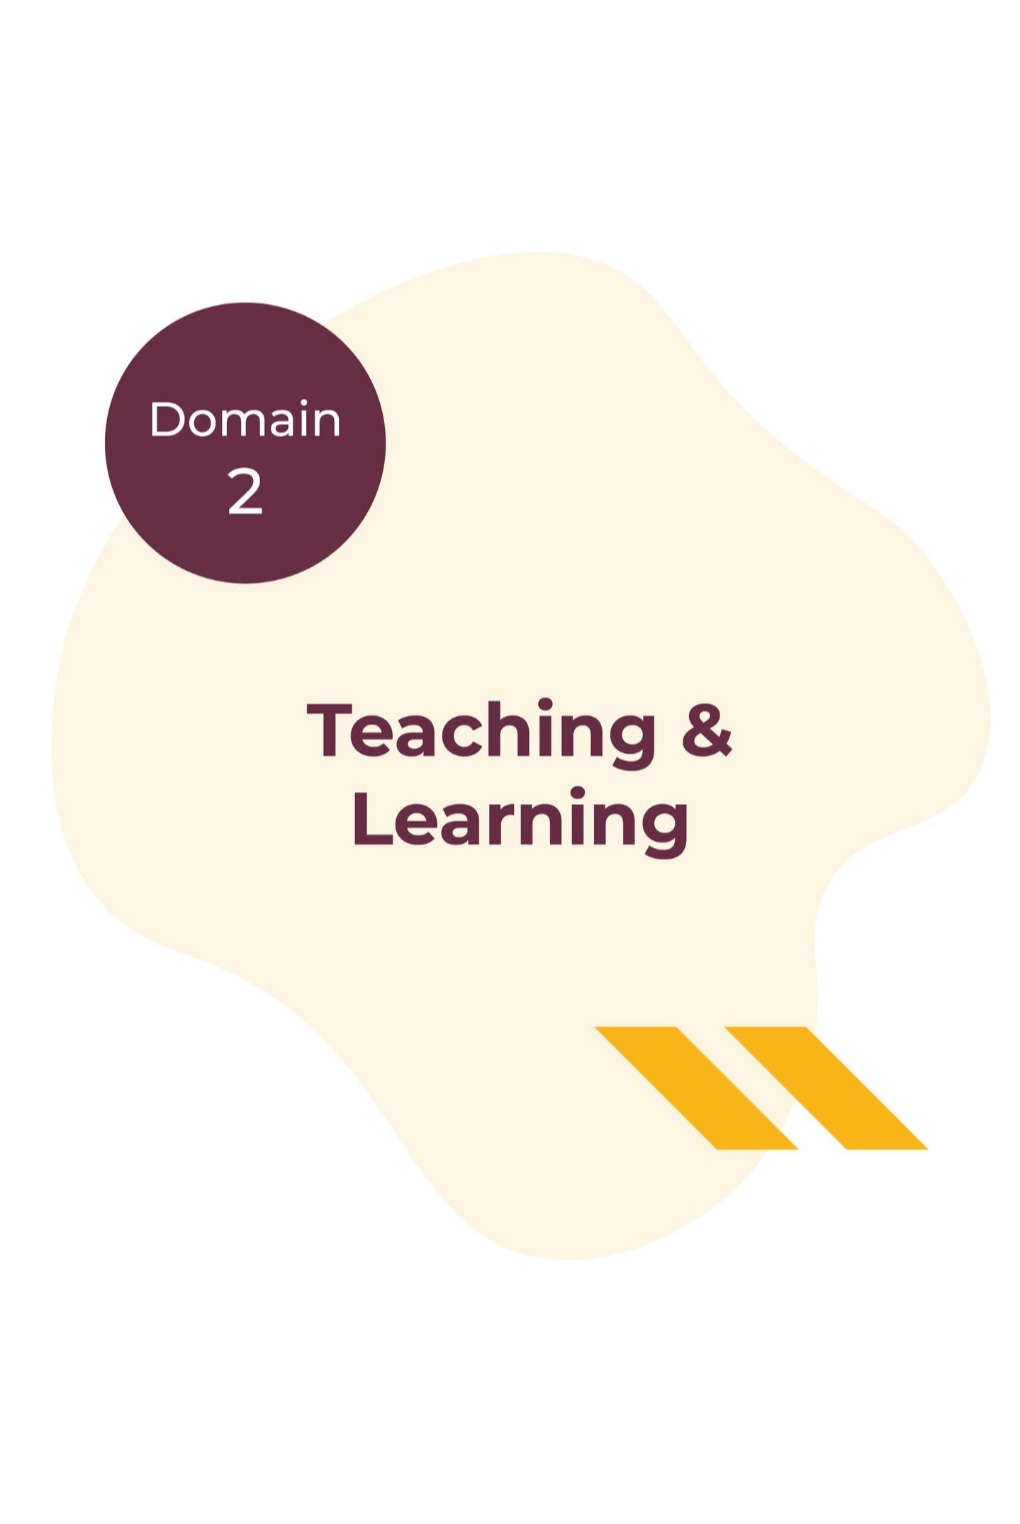 Domain 2 - Teaching and Learning